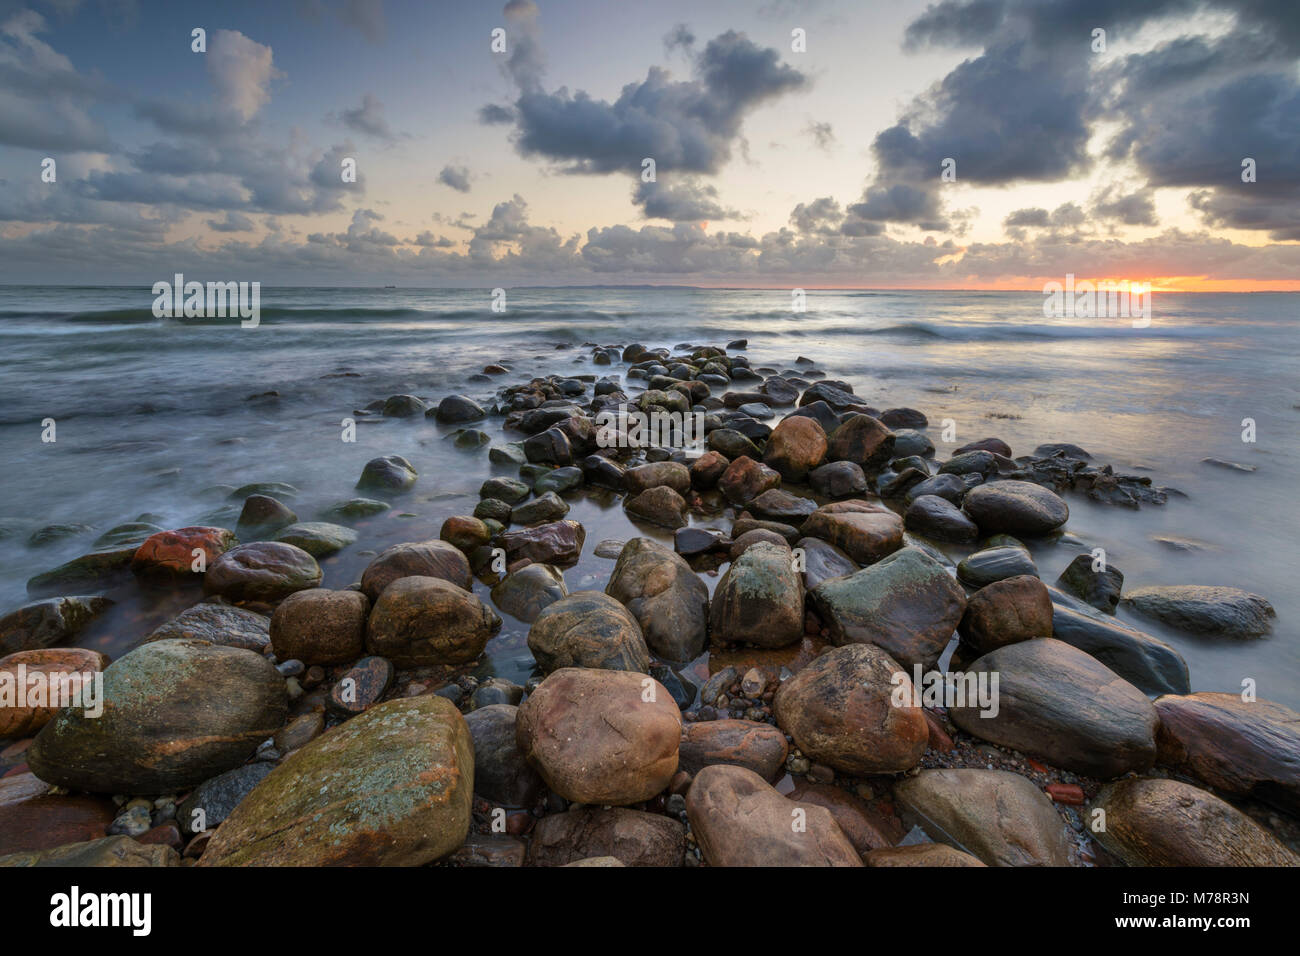 Rock breakwater in sea at sunrise, Munkerup, Kattegat Coast, Zealand, Denmark, Scandinavia, Europe - Stock Image